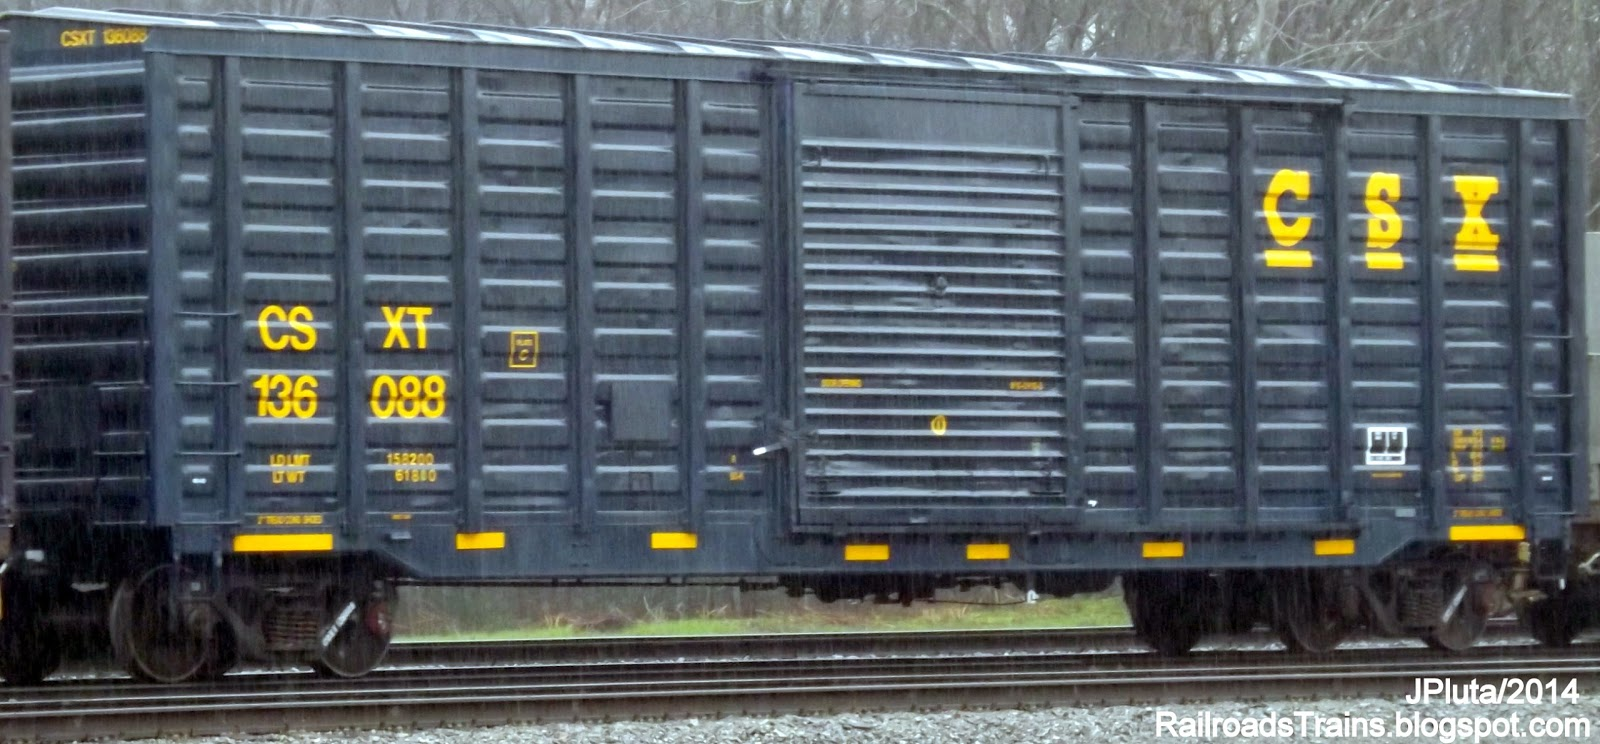 railroad singles Rail manufacturers and consultants providing railroad signal equipment, safety devices, communication services, train control systems, and electronics.